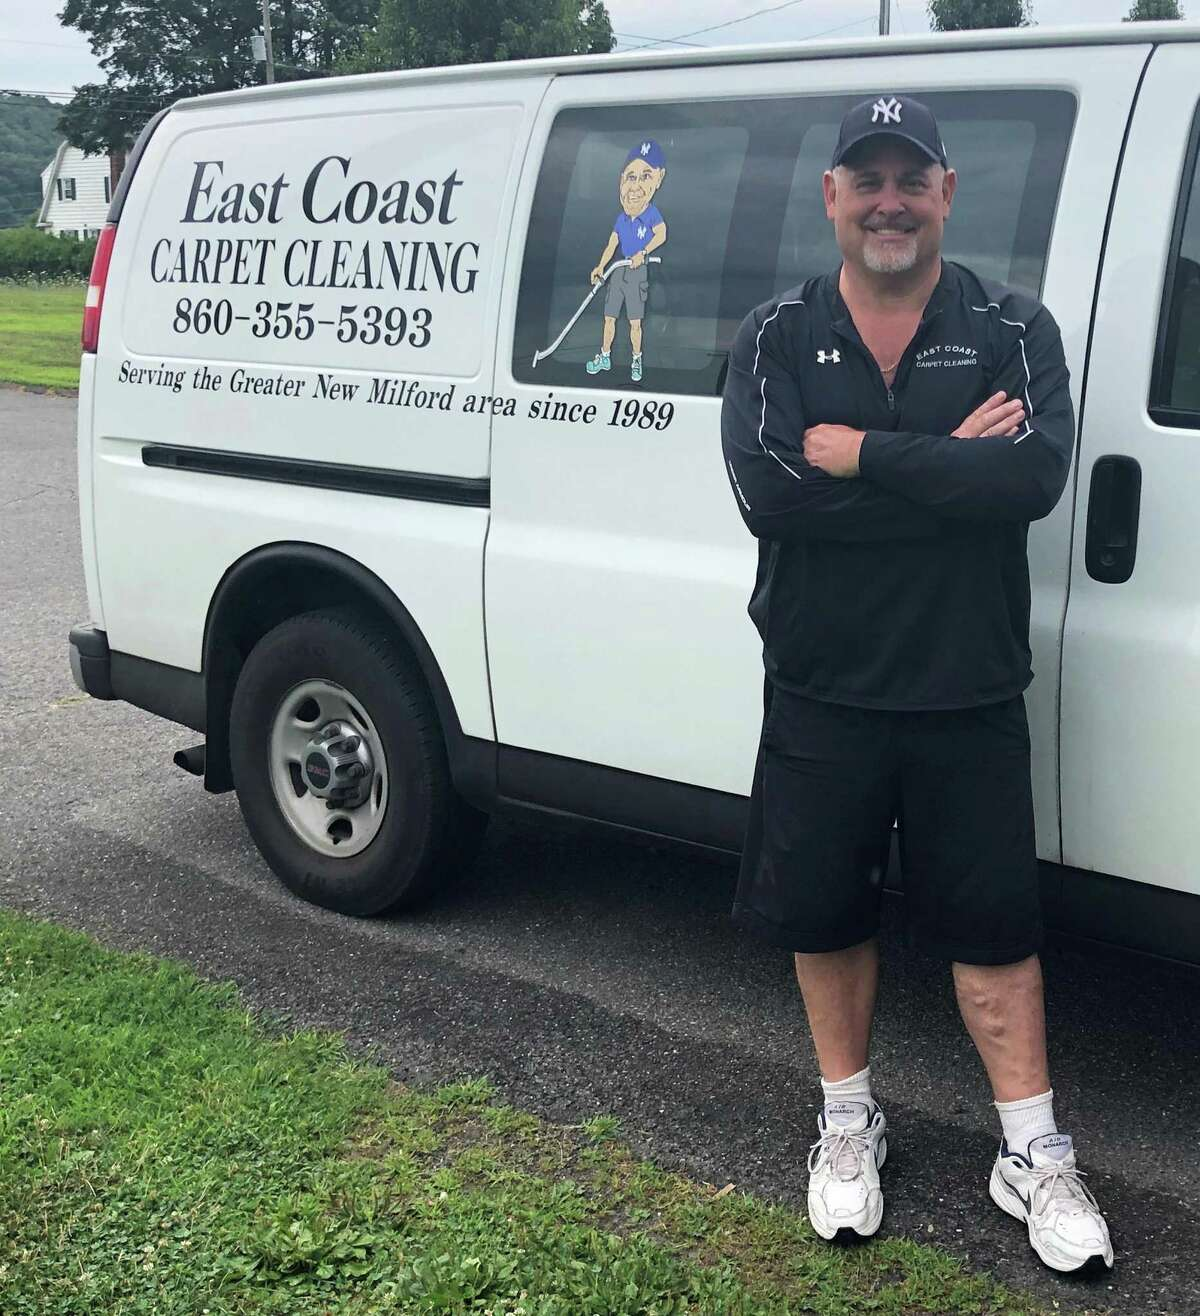 Doug Skelly, owner of East Coast Carpet & Upholstery Cleaning in New Milford, is celebrating the 30th anniversary of his business.